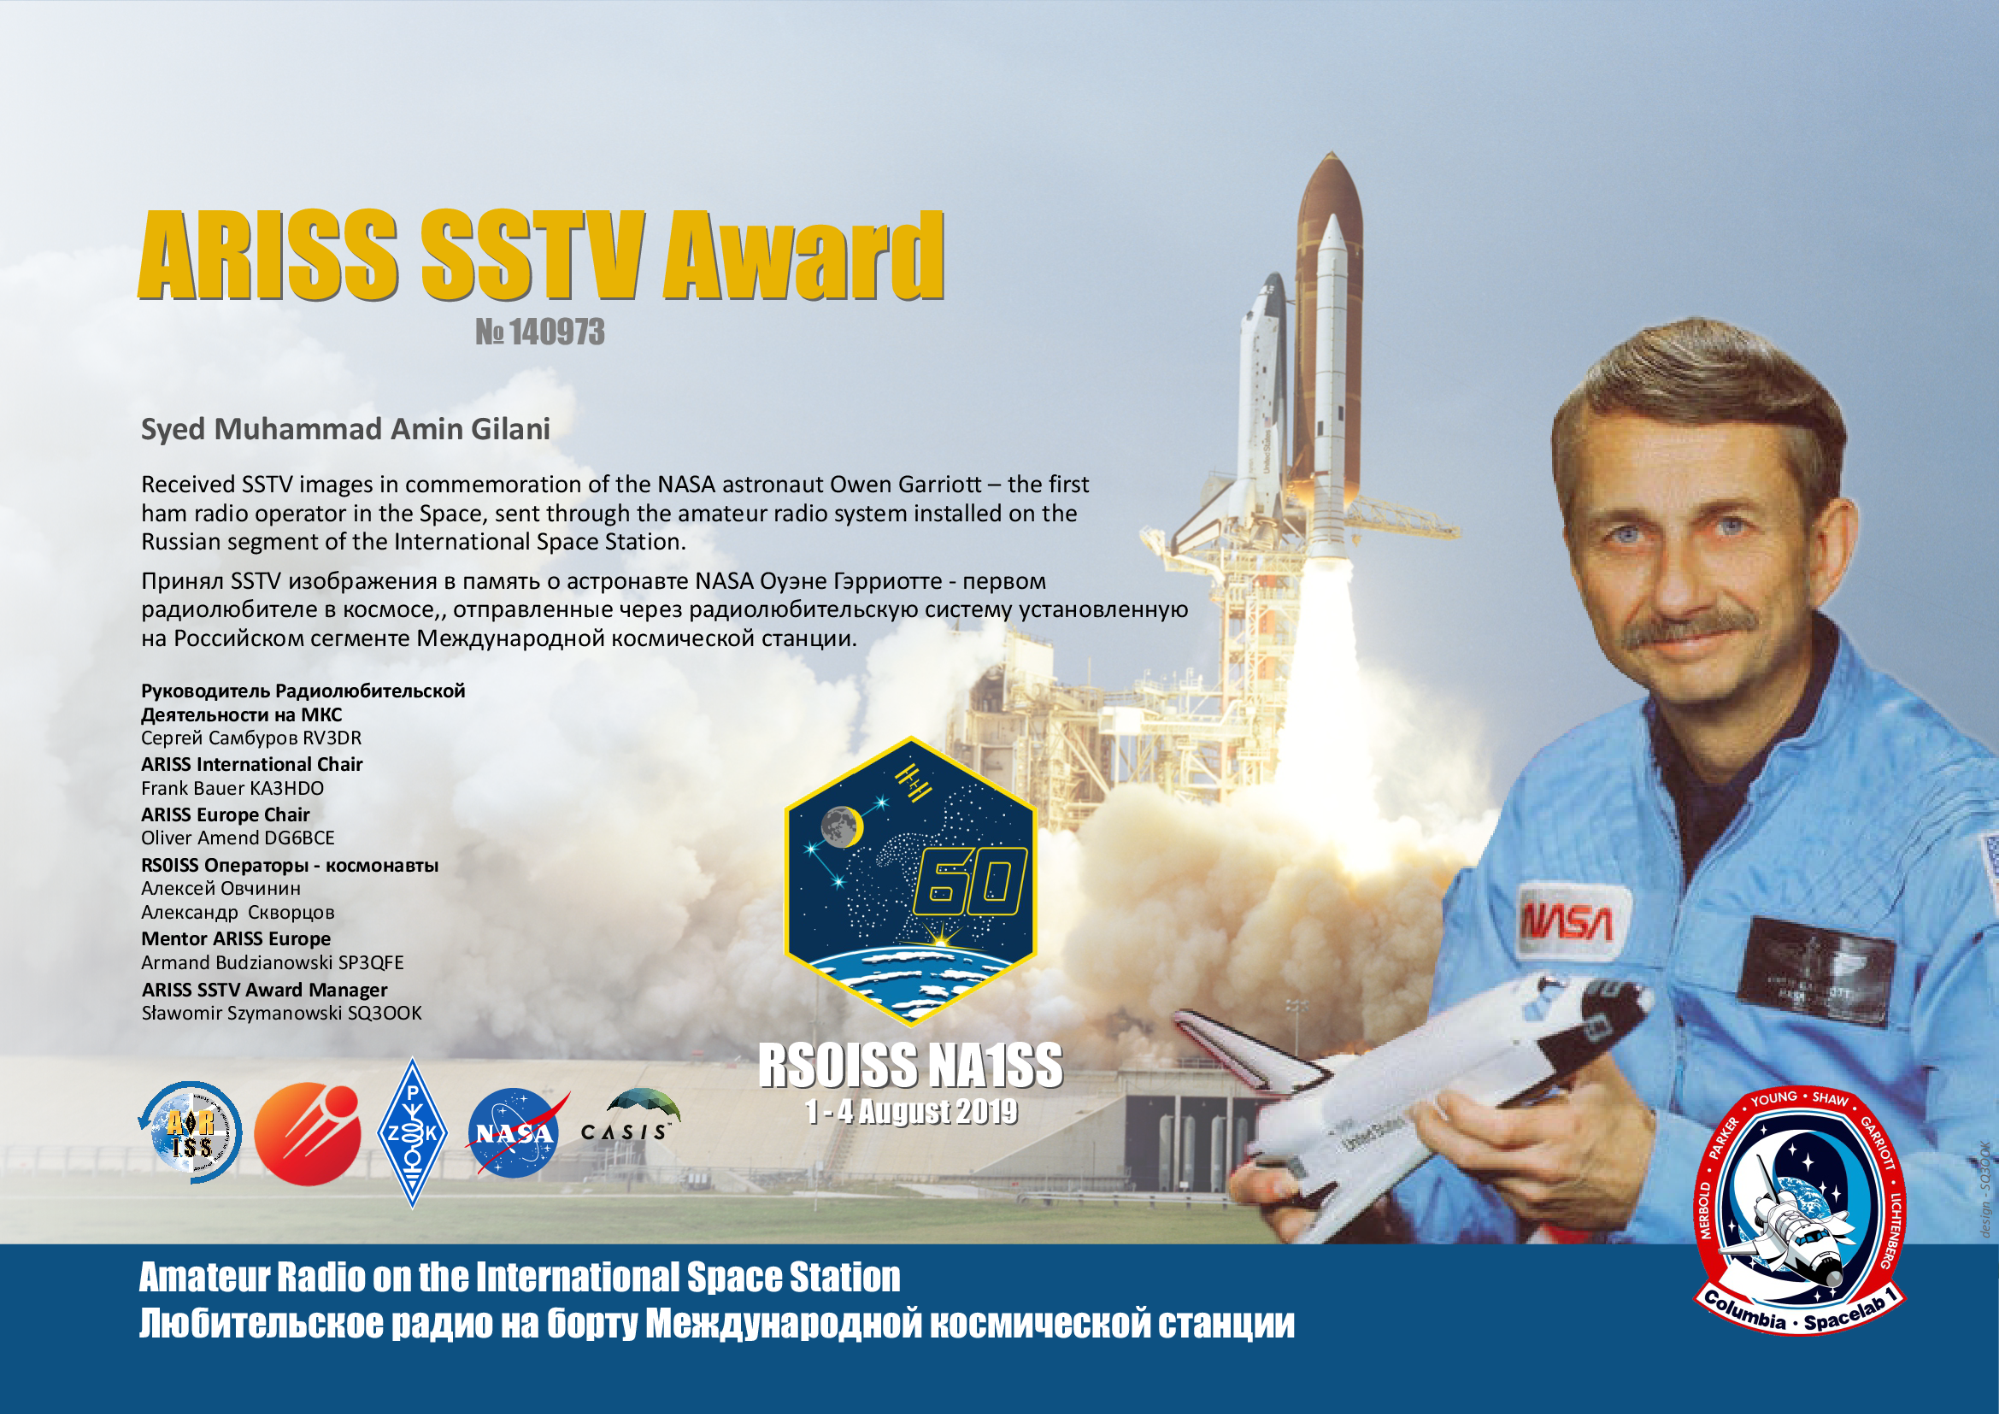 ARISS SSTV Award presented to Syed Muhammad Amin Gilani